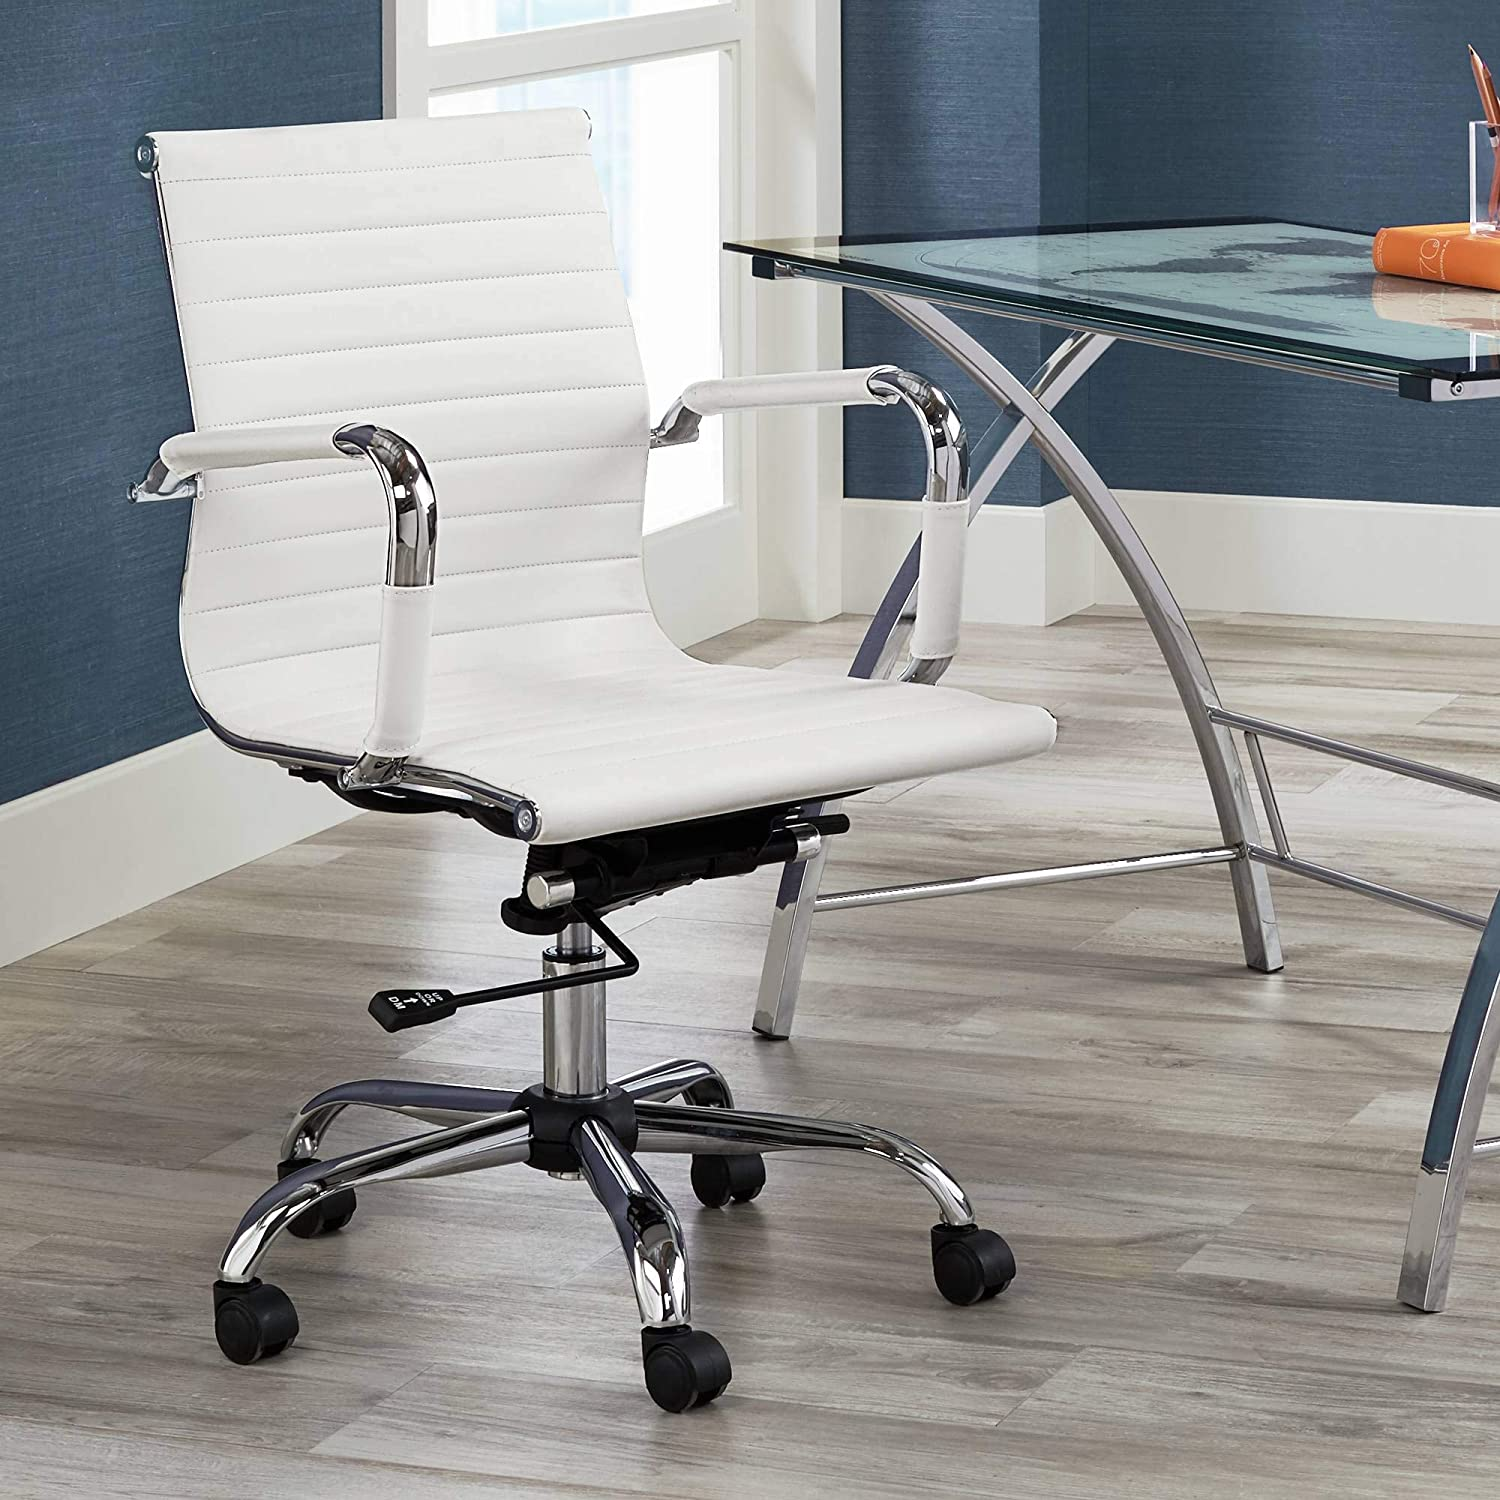 Studio 55D Serge White Low Back Swivel Office Chair